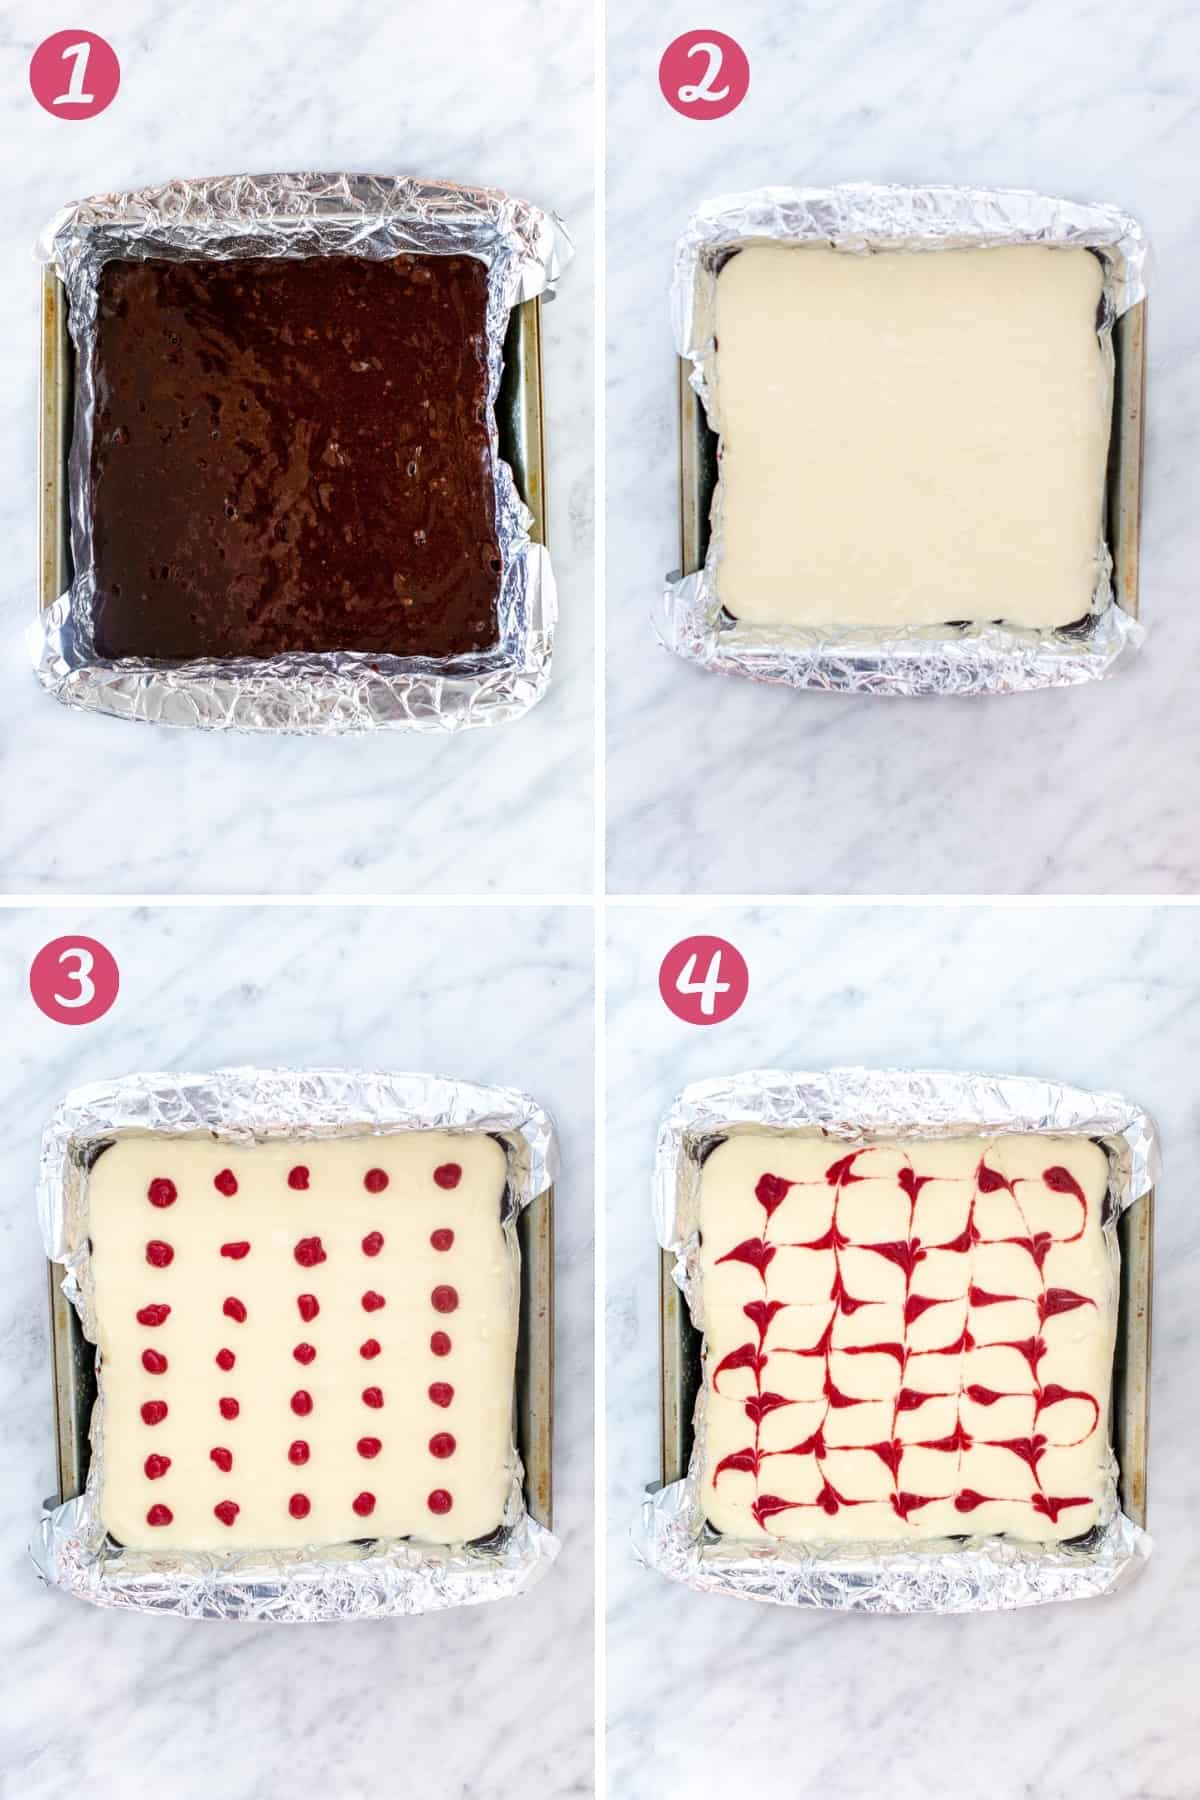 Collage of 4 photos showing how to make layered cream cheese brownies with a raspberry swirl.